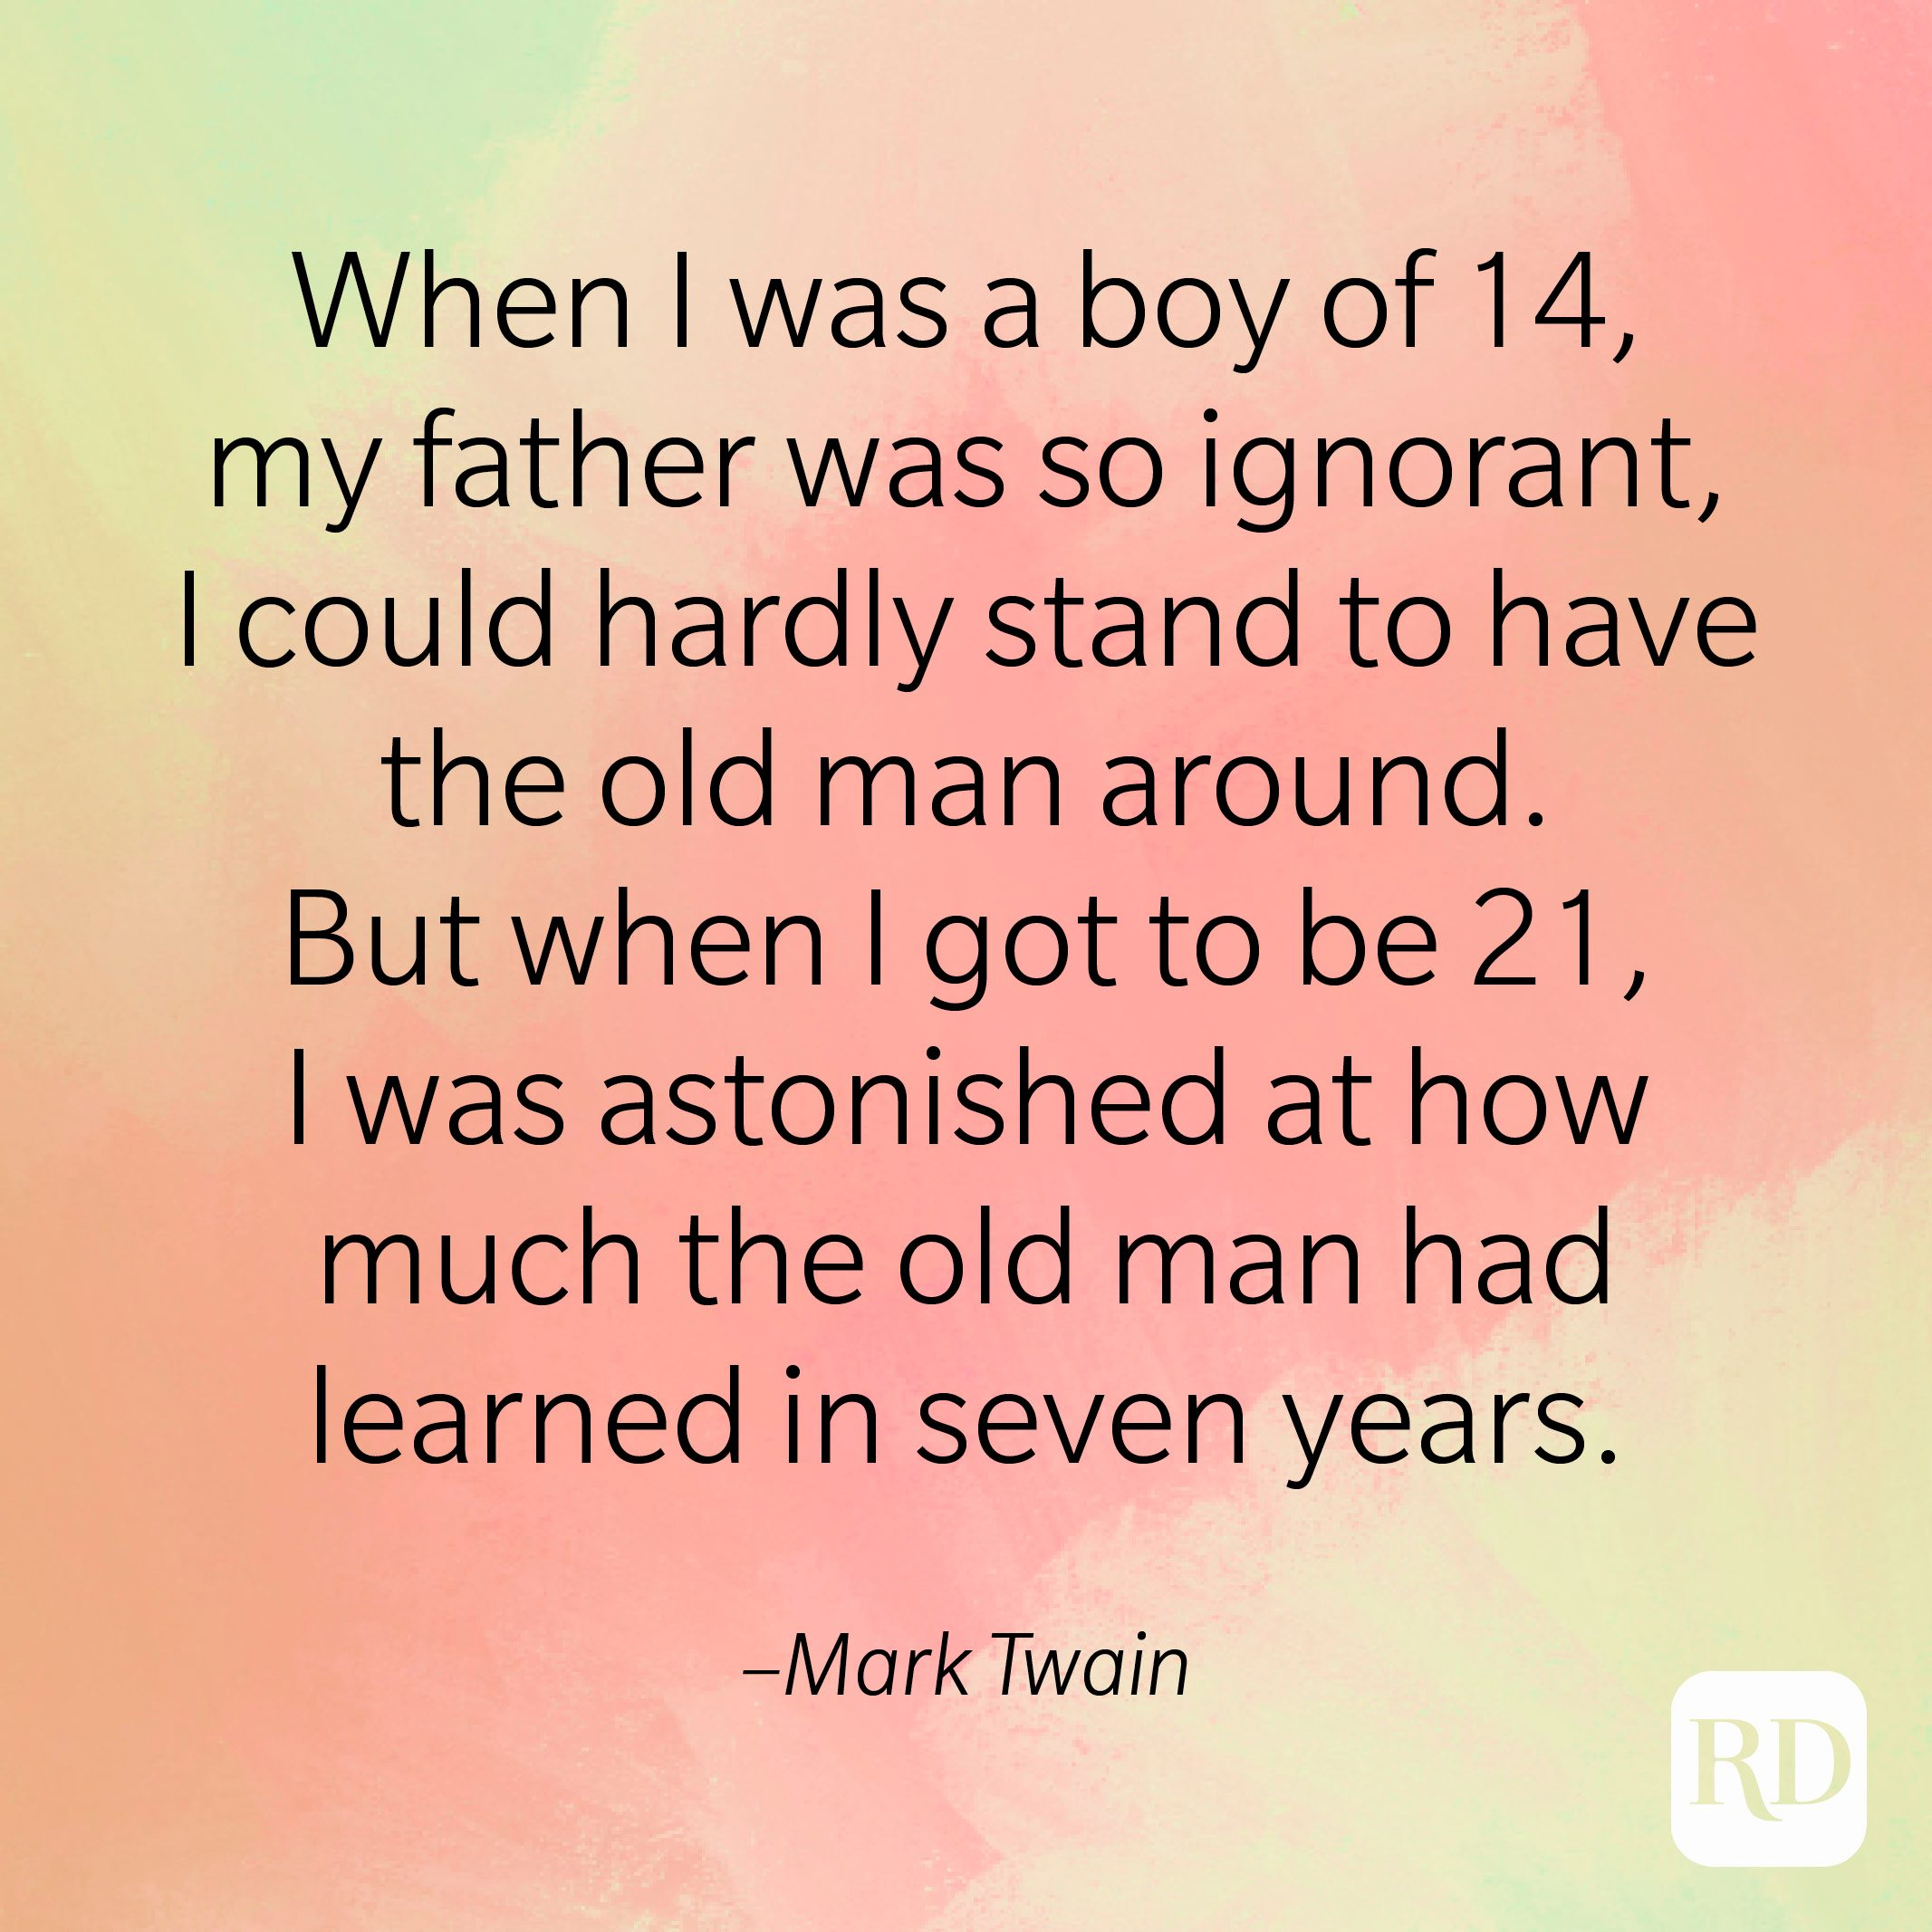 """""""When I was a boy of 14, my father was so ignorant, I could hardly stand to have the old man around. But when I got to be 21, I was astonished at how much the old man had learned in seven years."""" –Mark Twain"""